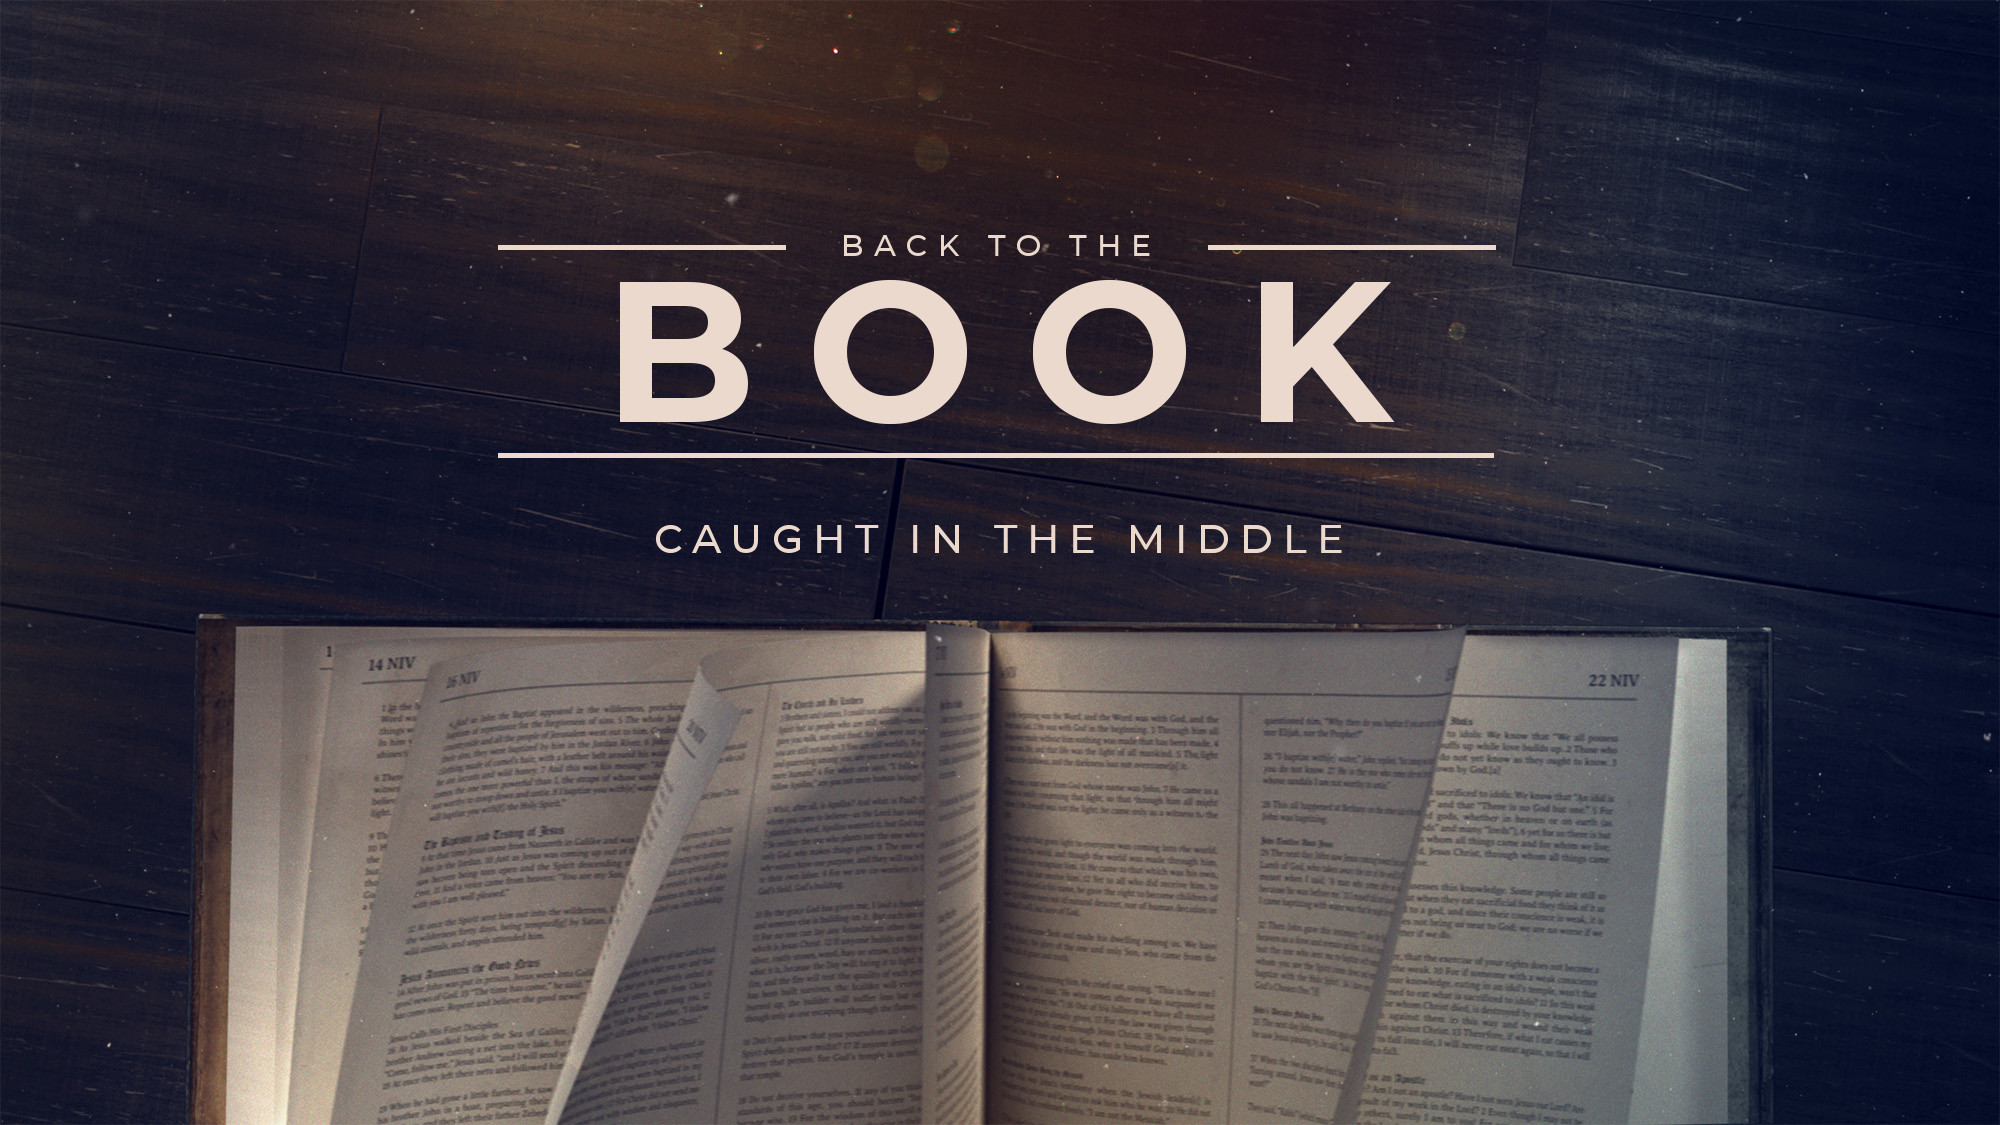 Back to the Book - Caught in the Middle